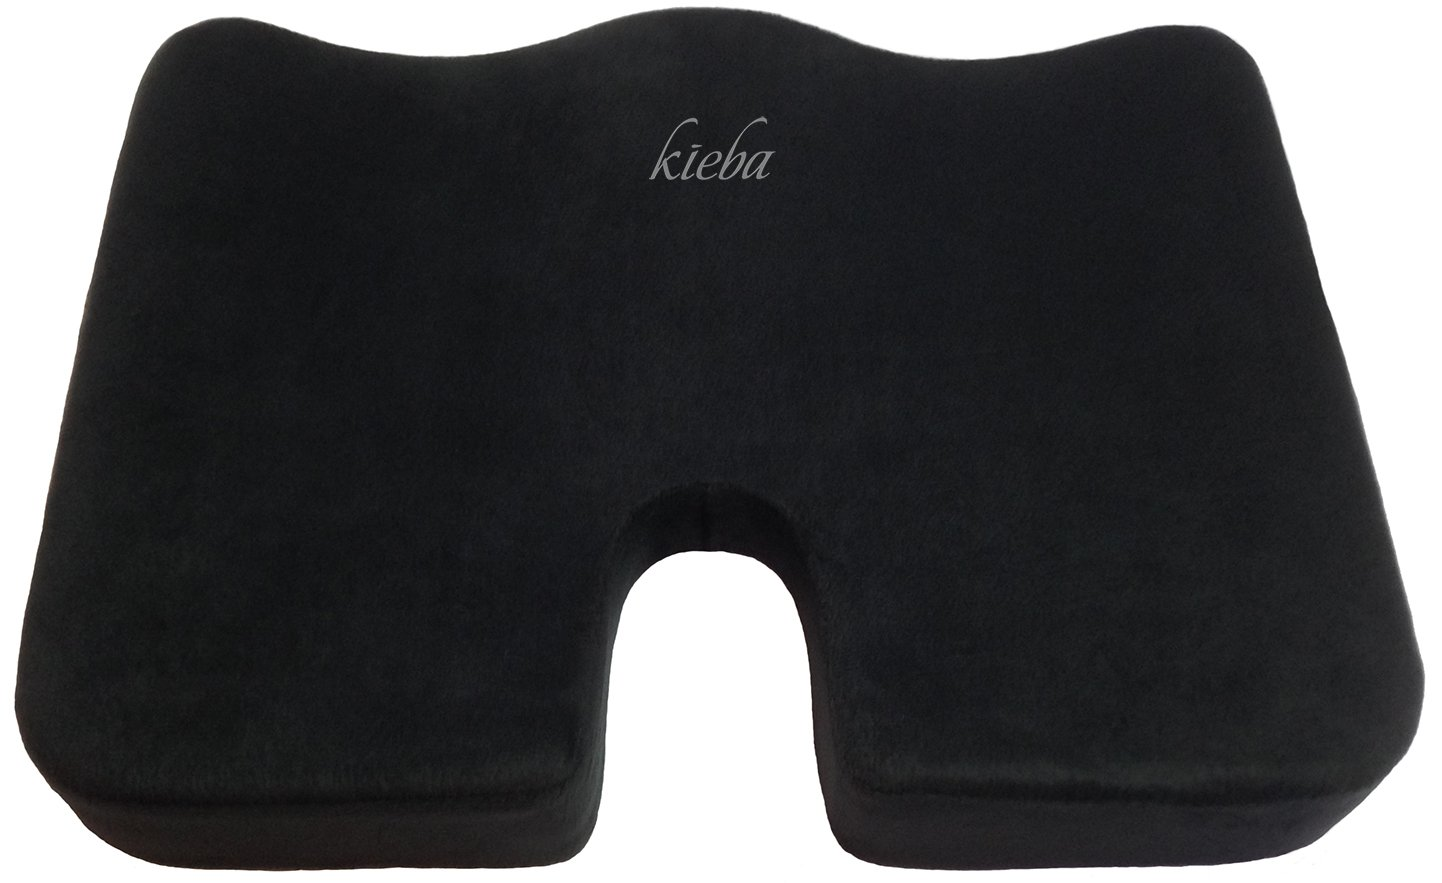 Kieba Coccyx Seat Cushion, Large Orthopedic Tailbone Pillow. Ultra Premium 100% Memory Foam Seat Cushion for Sciatica, Back, and Tailbone Pain (Black)